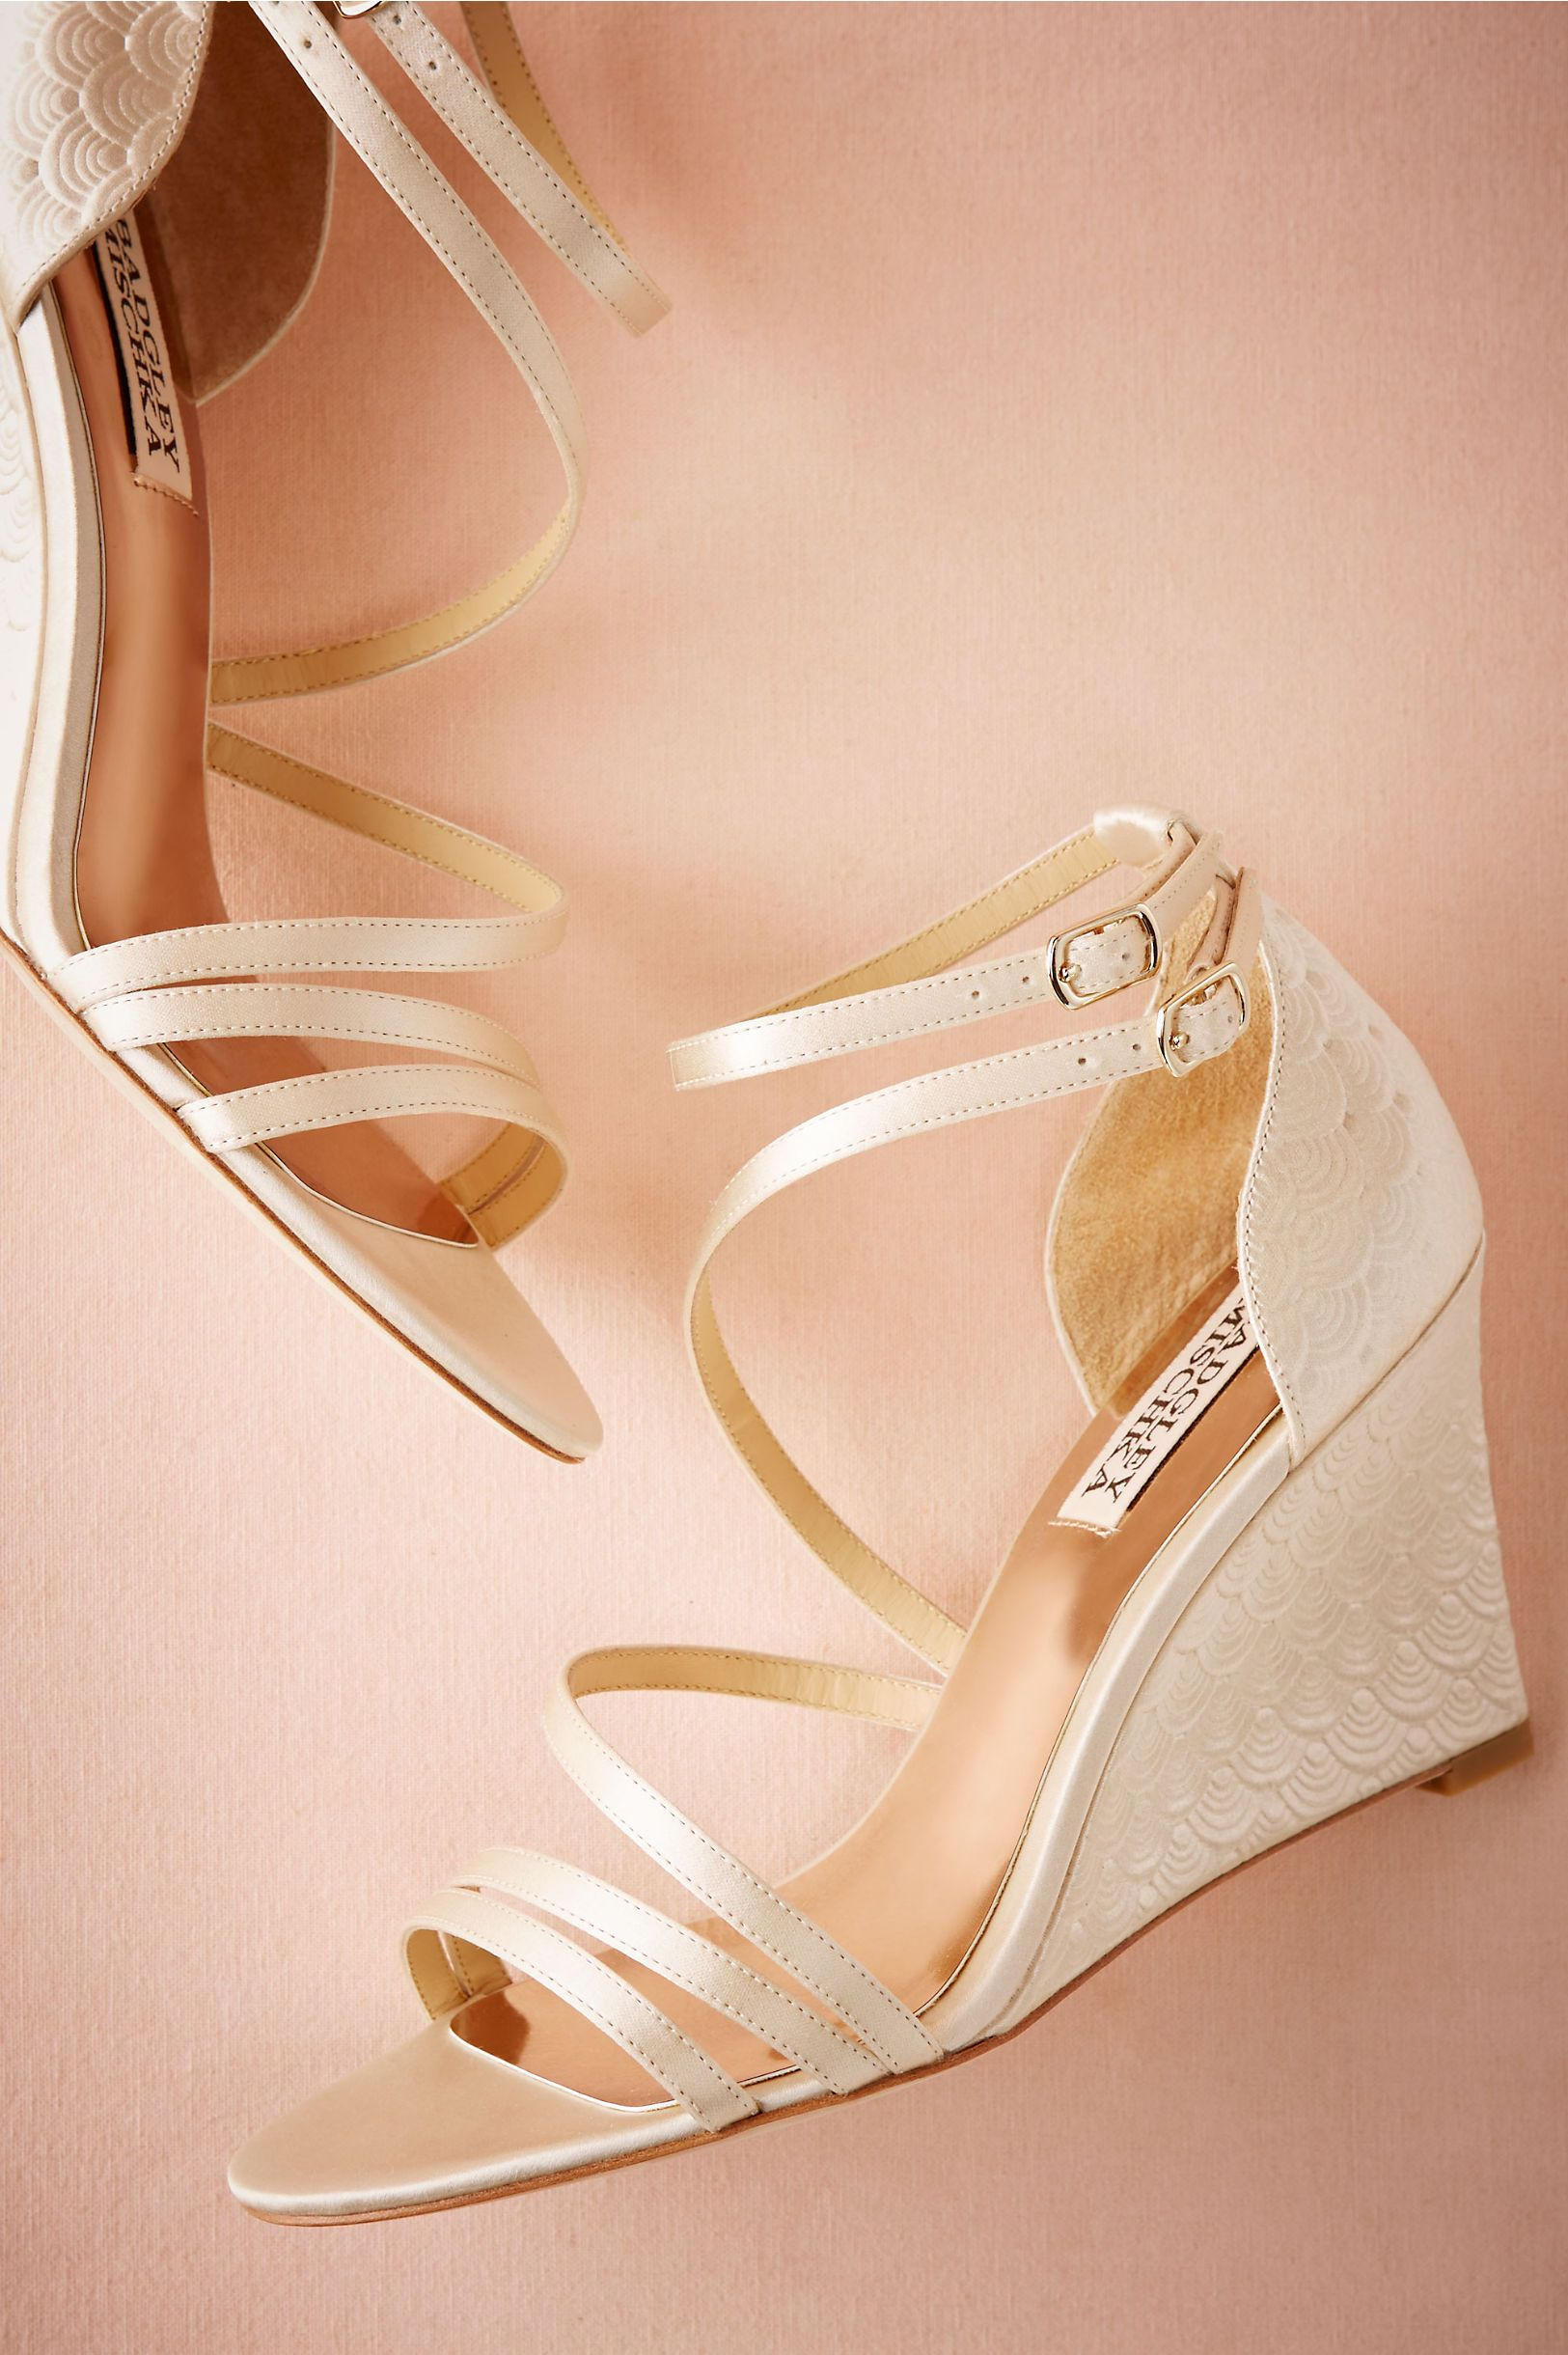 f846b2858 BHLDN Valencia Wedges in Shoes   Accessories Shoes at BHLDN ...